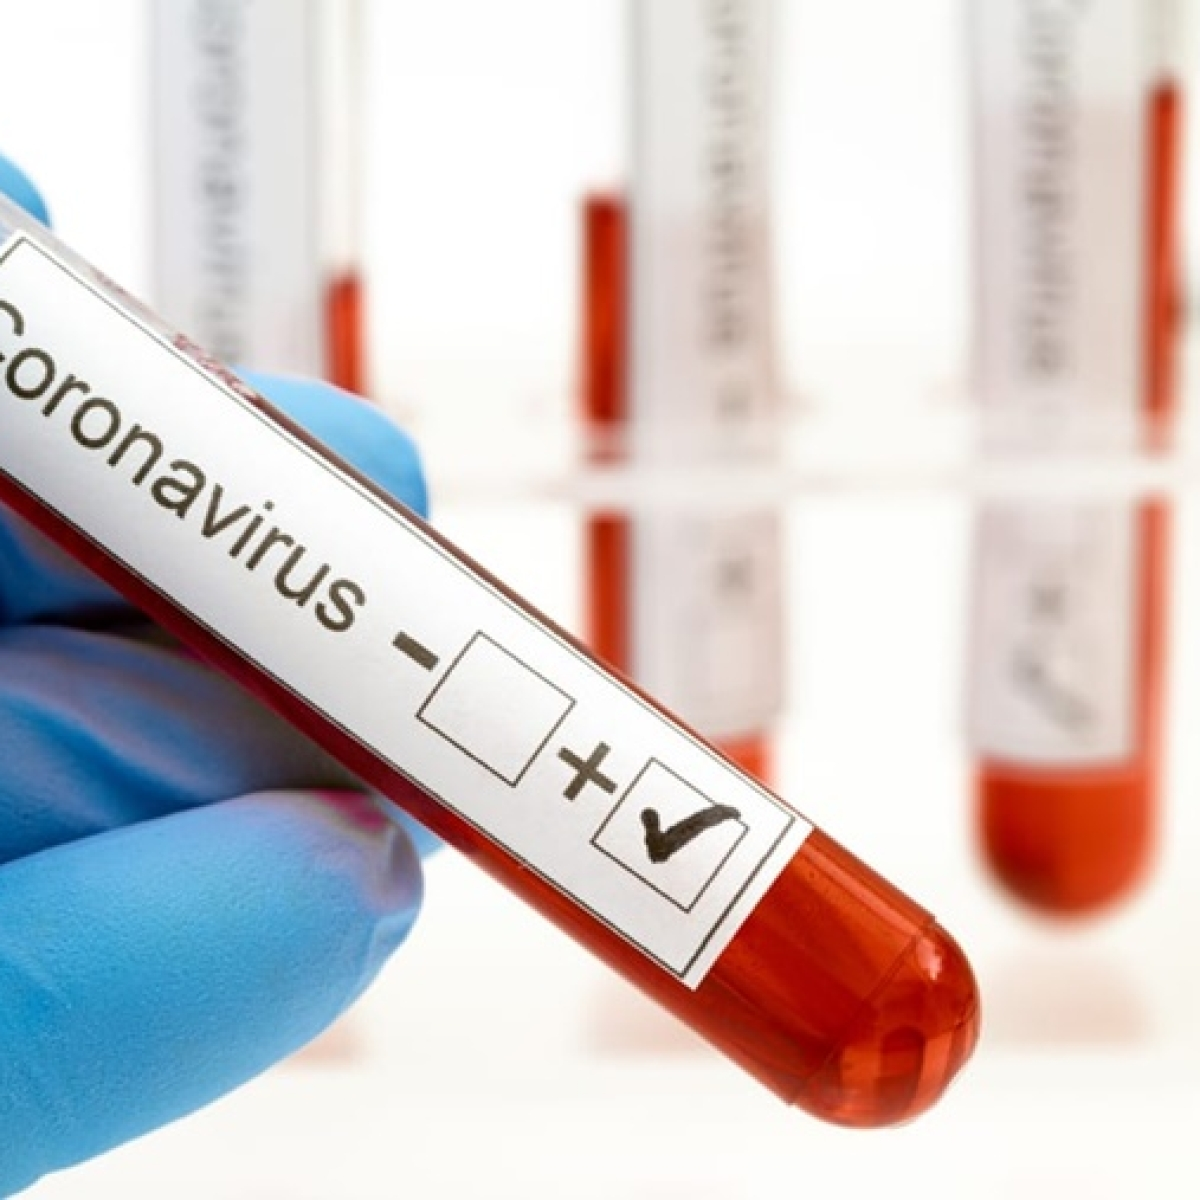 Maharashtra: COVID-19 positive Nagpur man with UK travel history suspected of carrying new virus strain